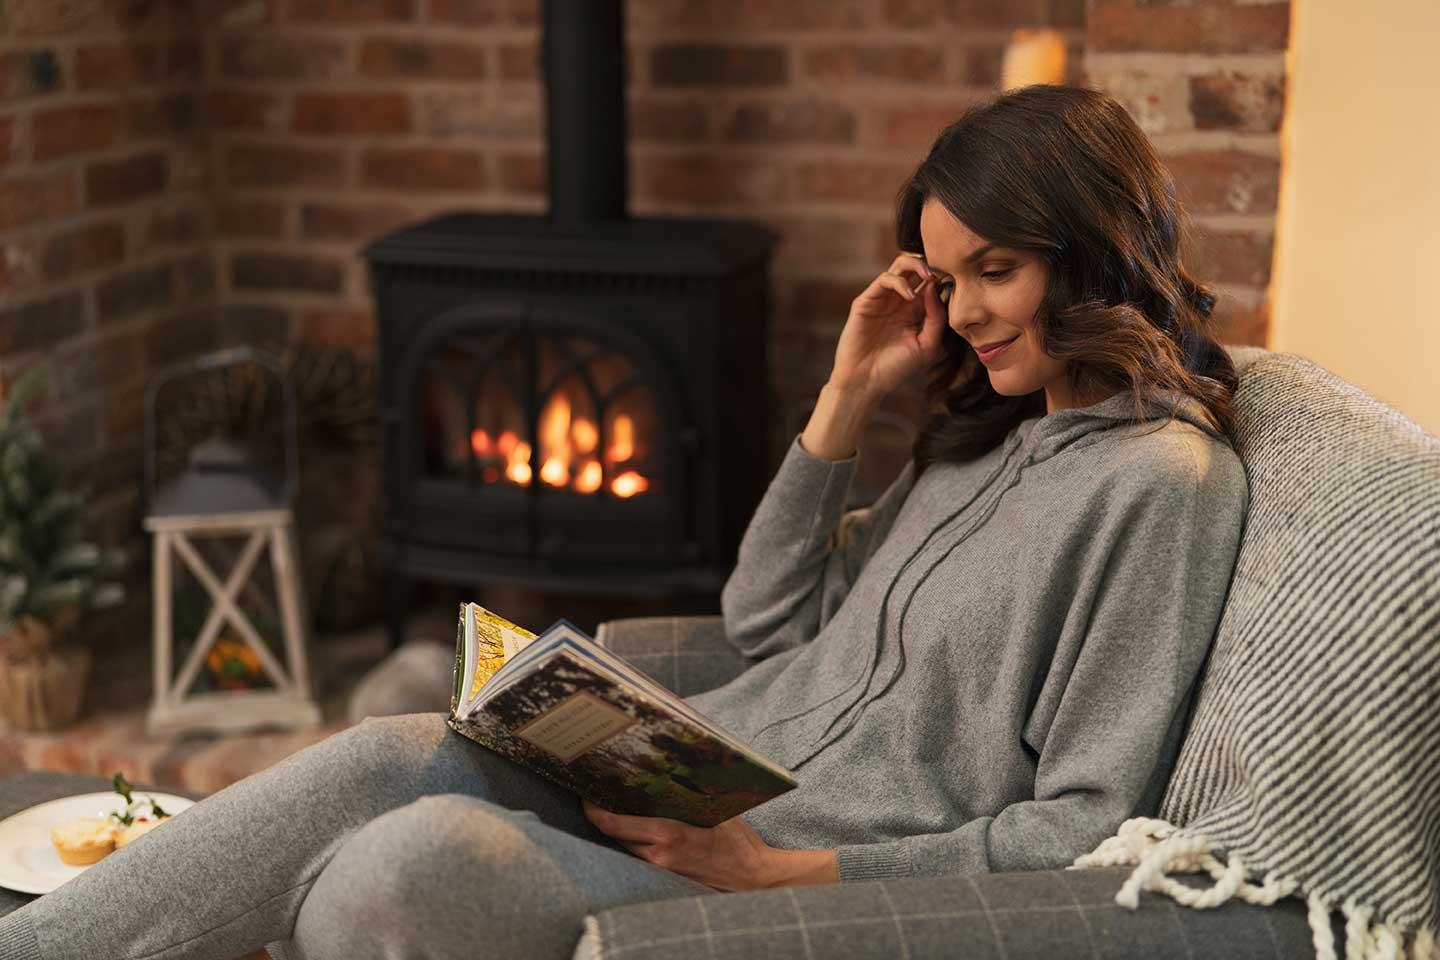 grey cashmere loungewear worn at home reading a book by the fire